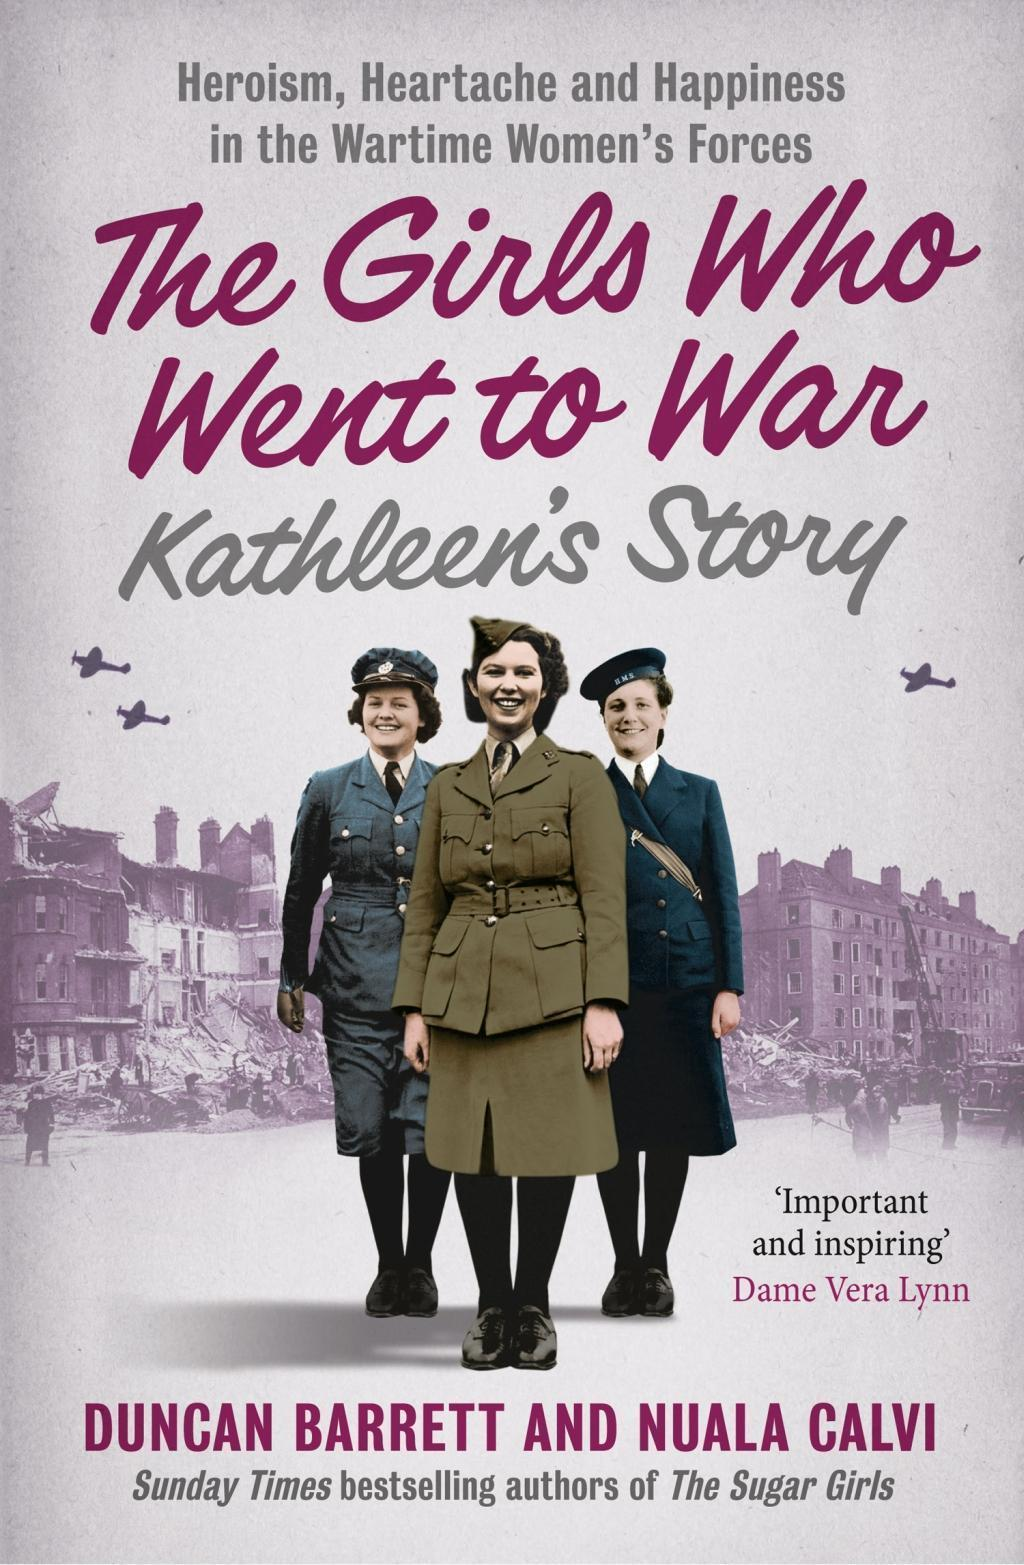 Kathleen's Story: Heroism, heartache and happiness in the wartime women's forces (The Girls Who Went to War, Book 3)